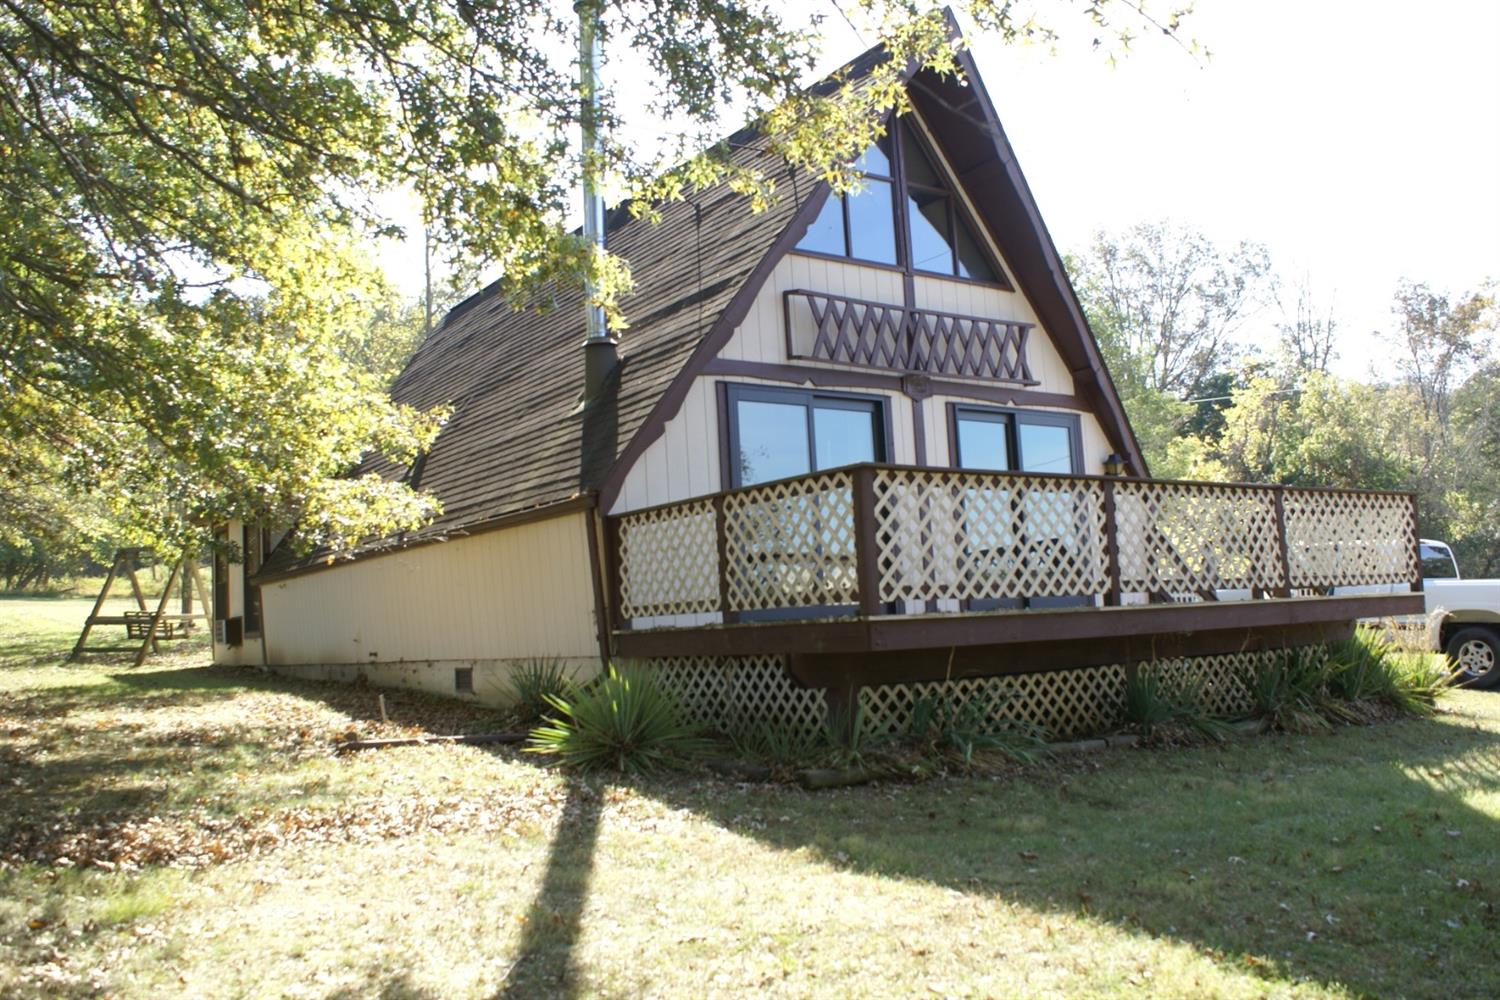 perry park singles 540 swan ct, perry park, ky 40363 single family real estate great weekend get away just an hour from cincinnati or louisville gated golf course community hike, bike, golf, fish.